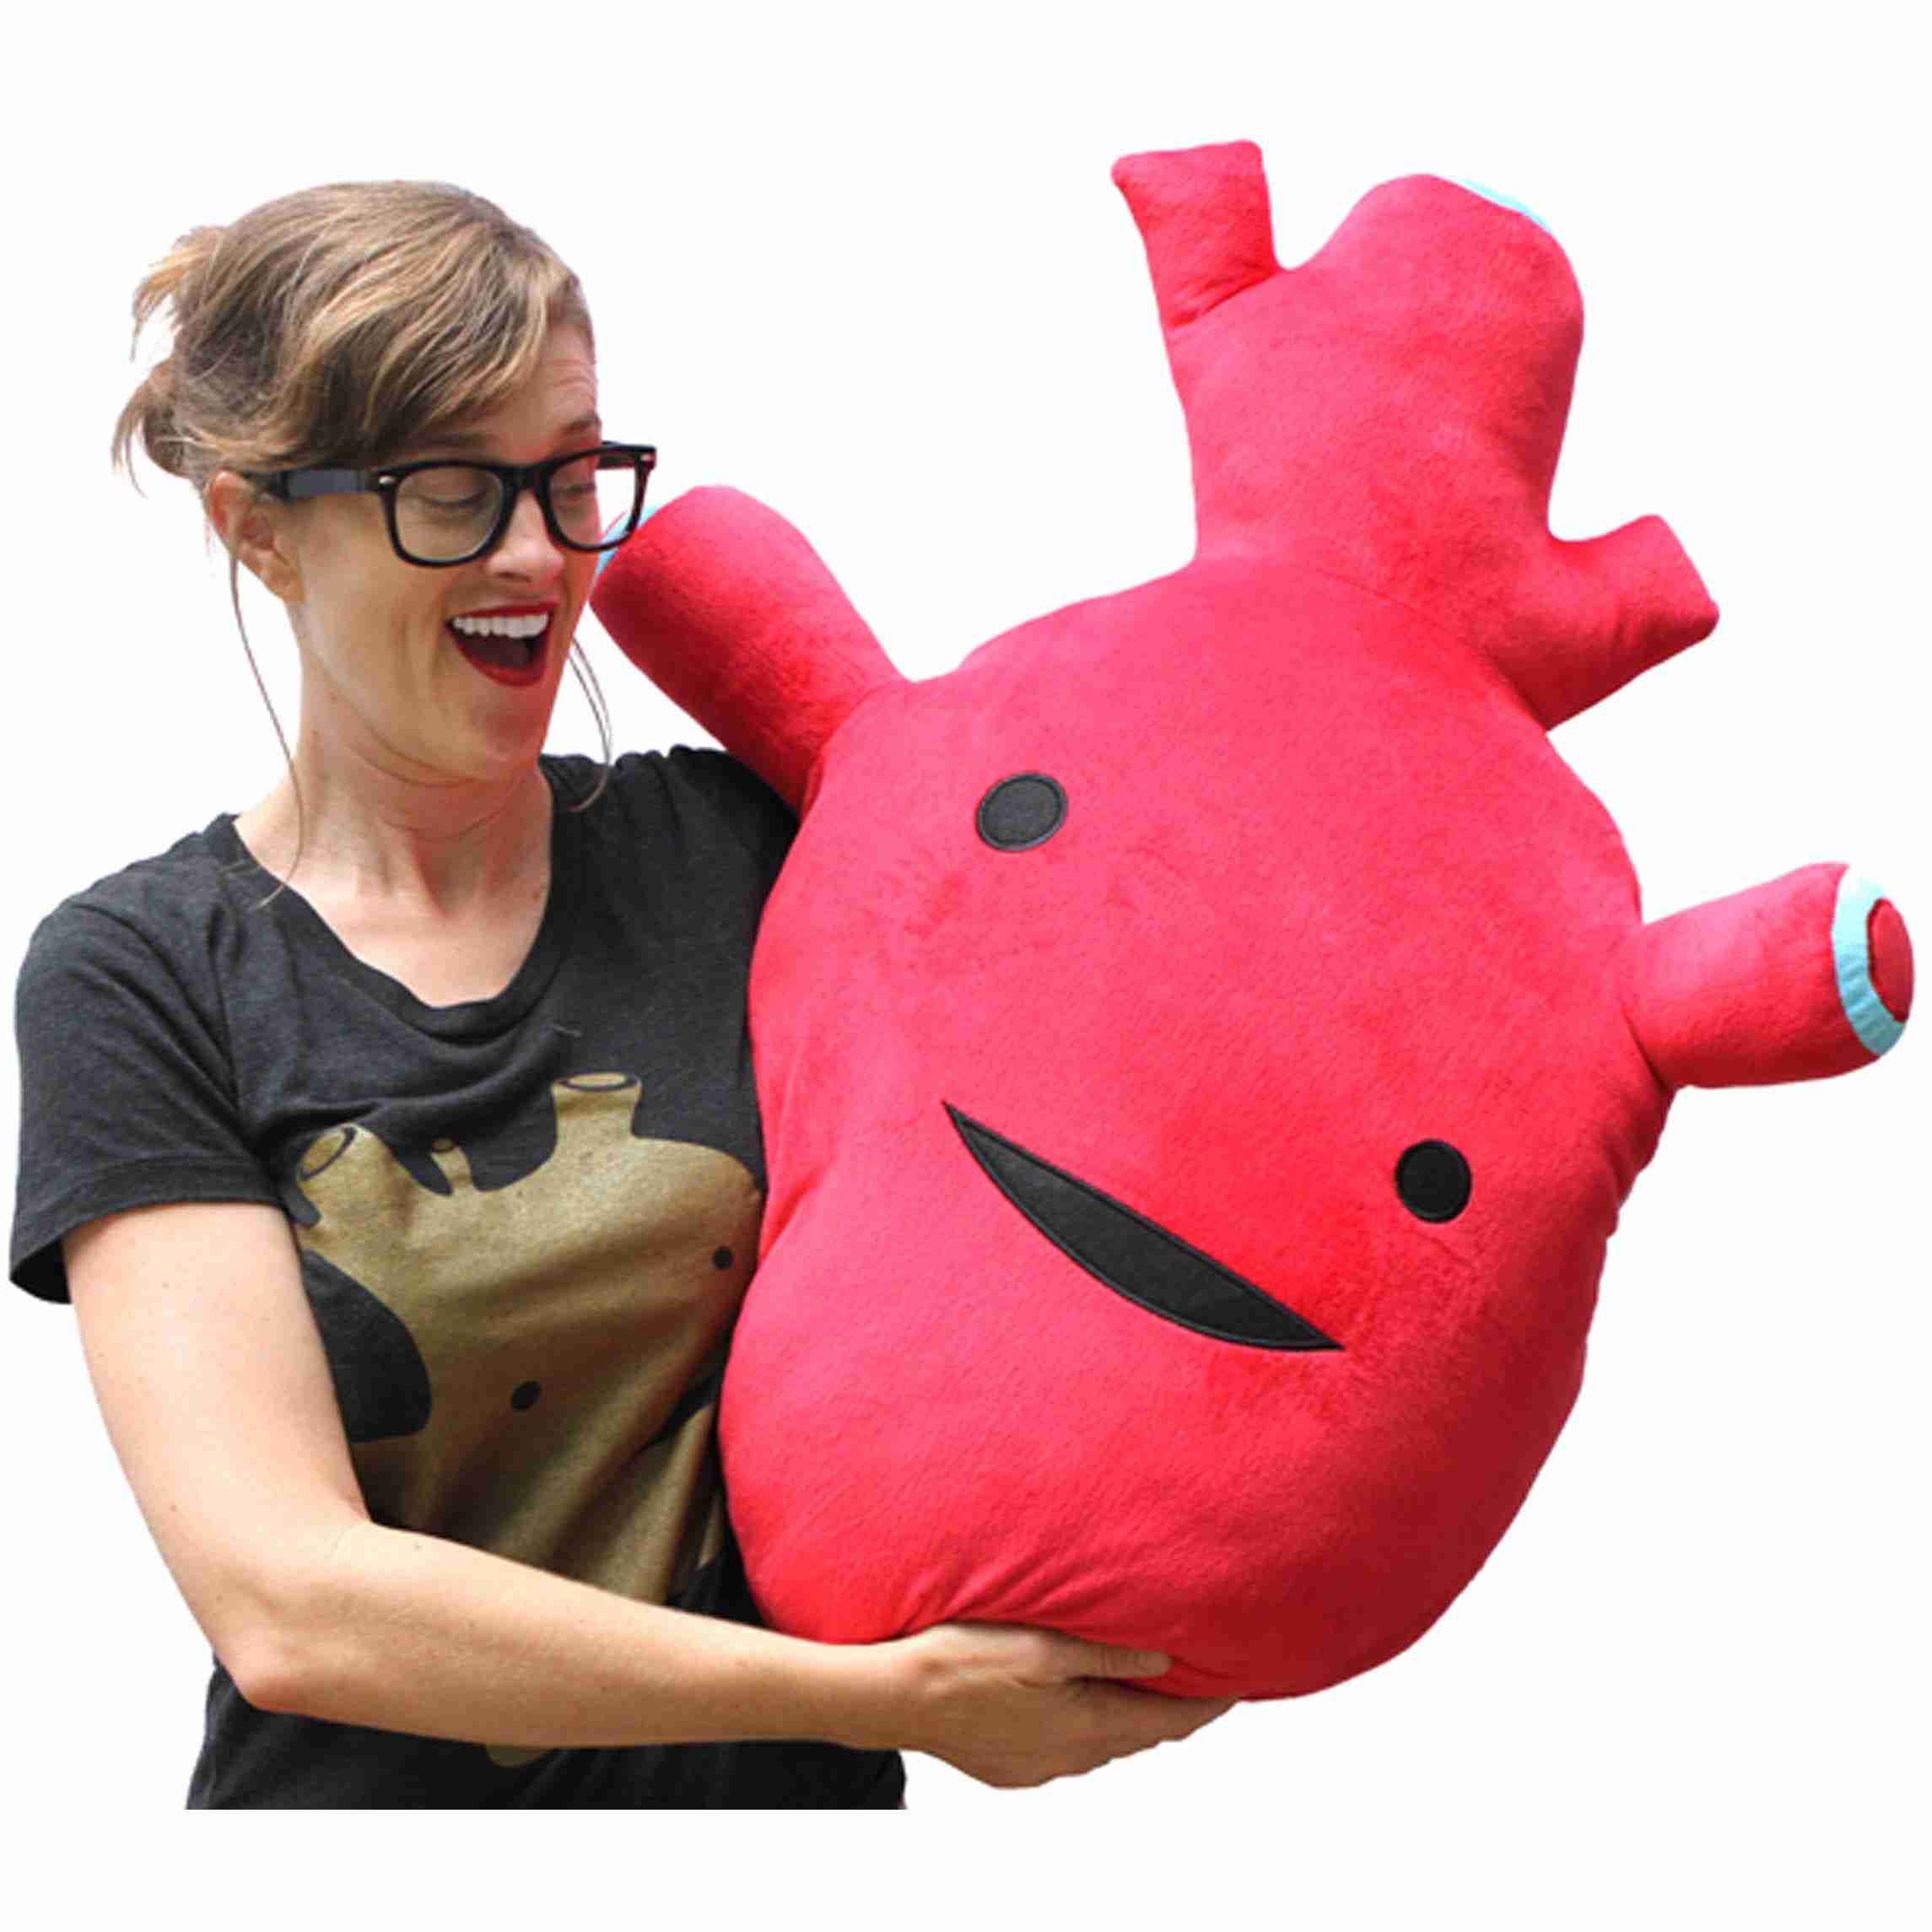 Big Big Heart - Giant Heart Plush by I Heart Guts